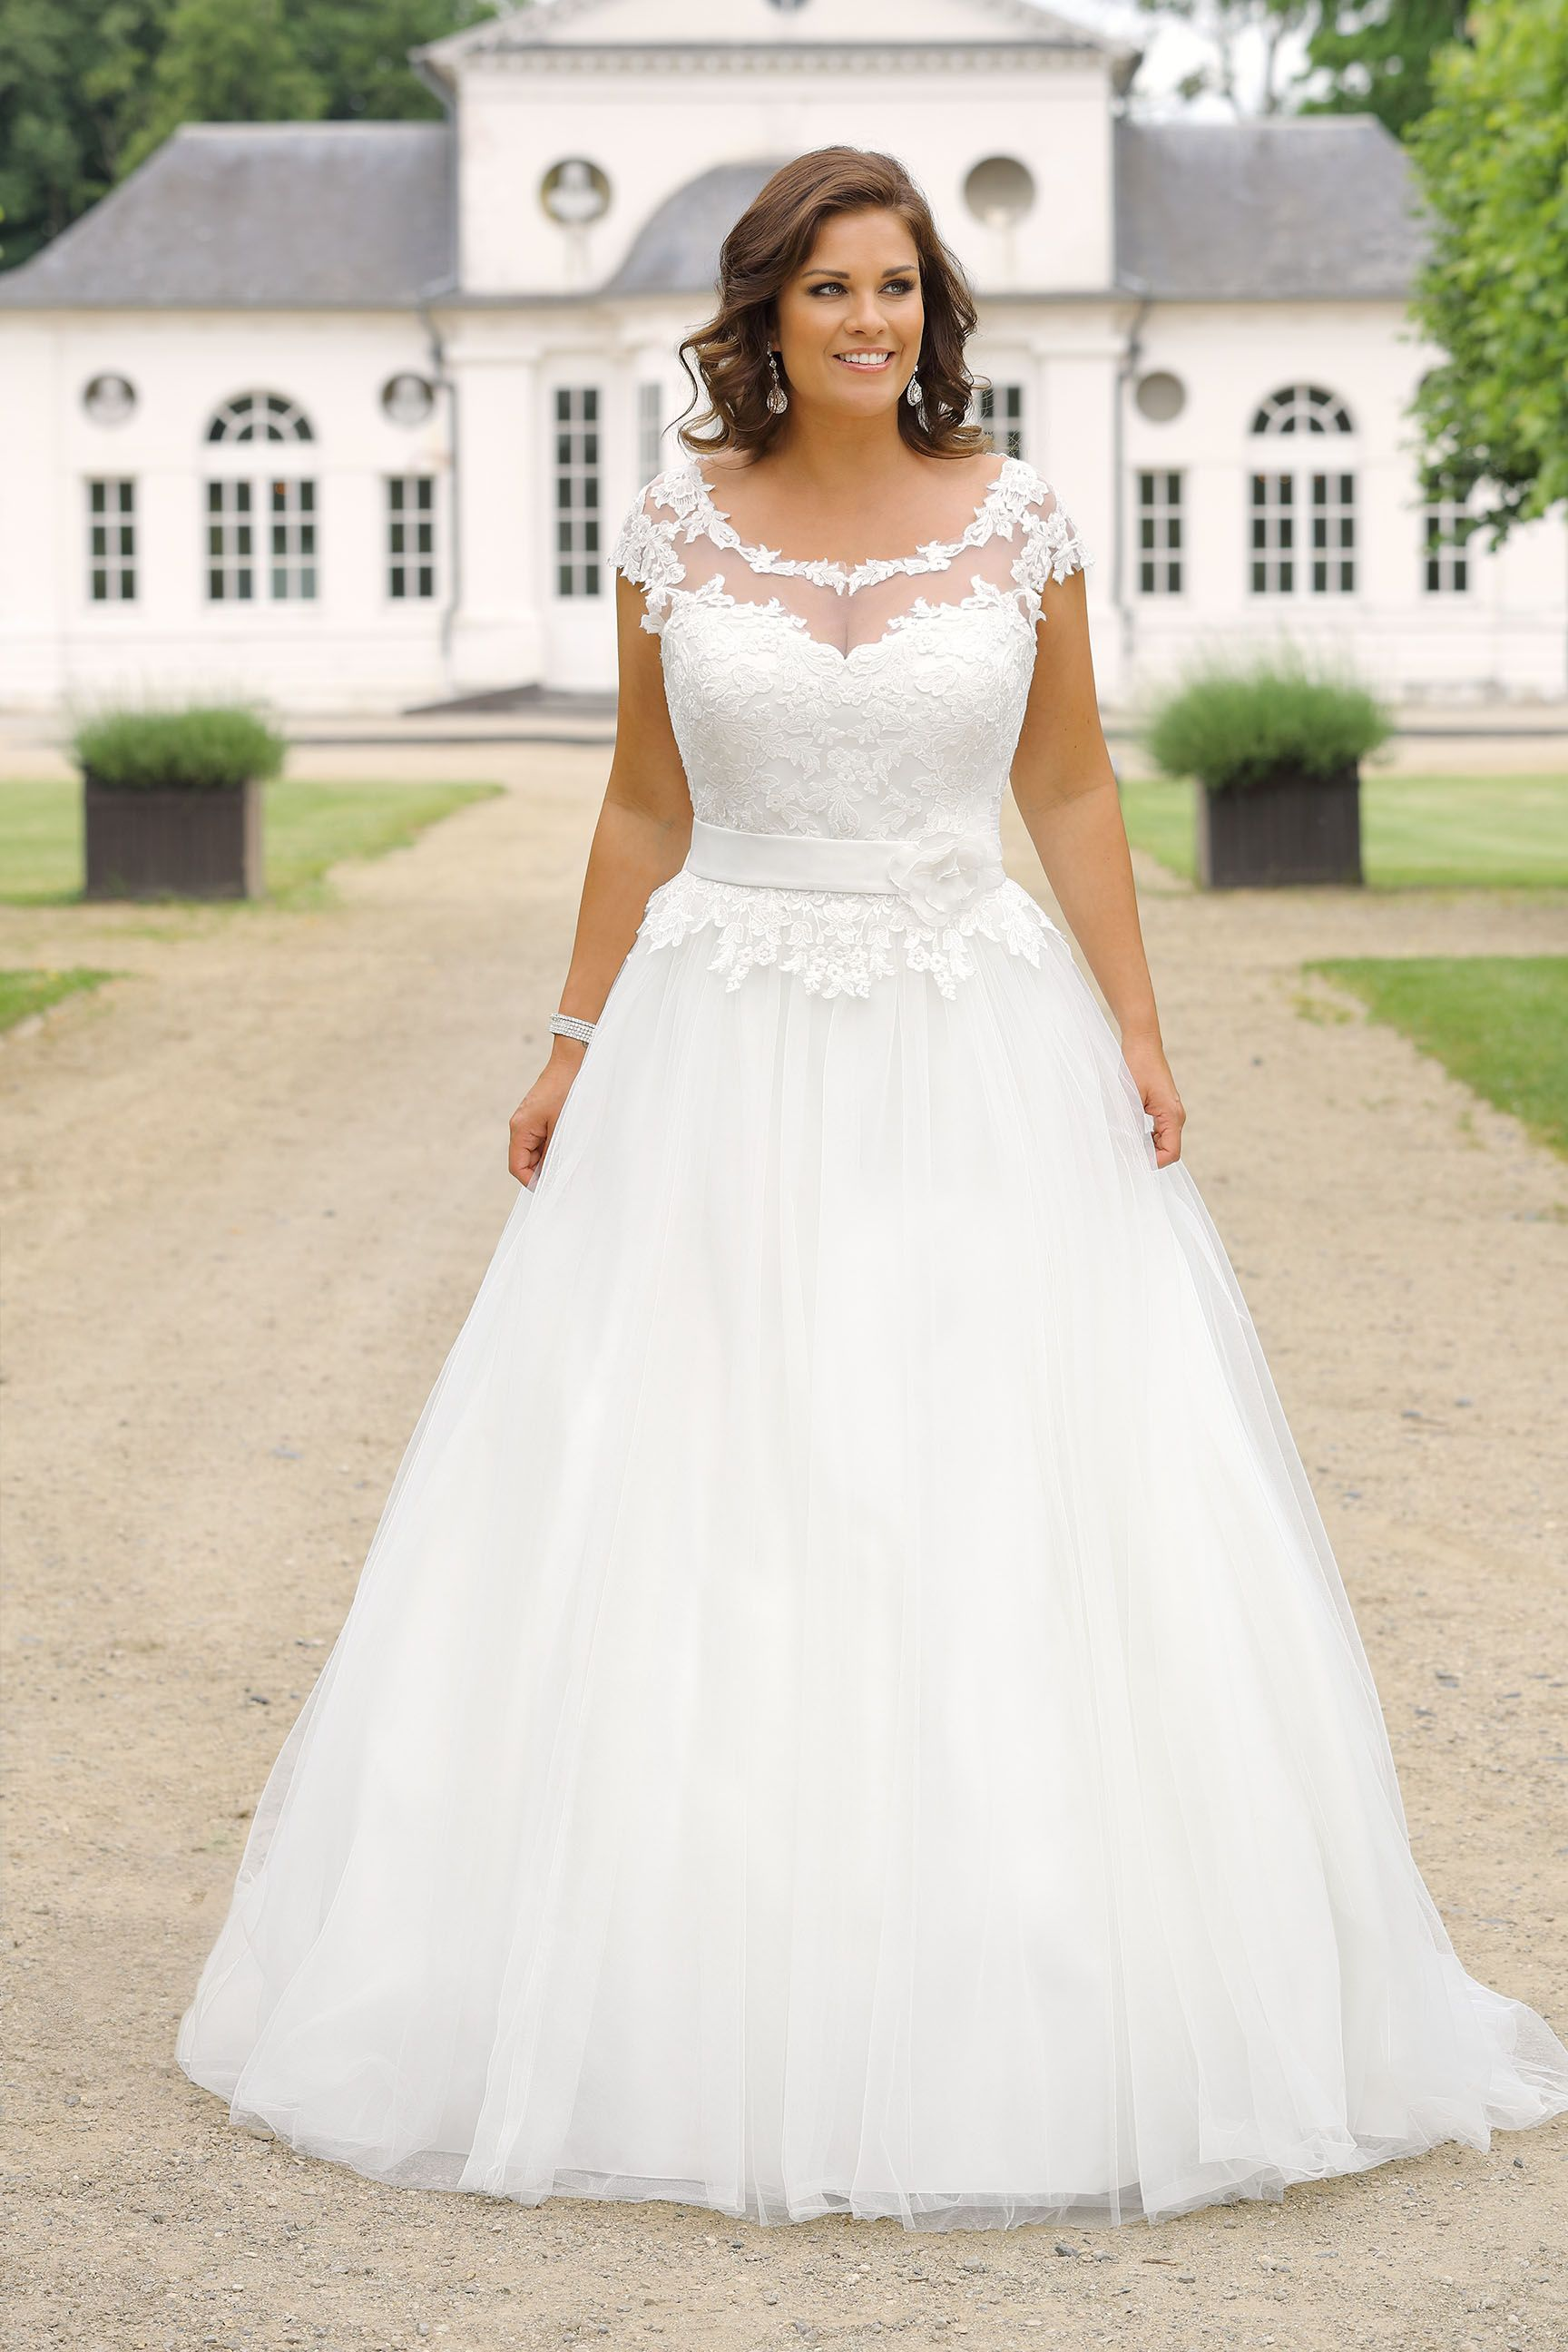 LS318107 - Ladybird Bruidsmode PlusSize | Wedding Ideas | Pinterest ...